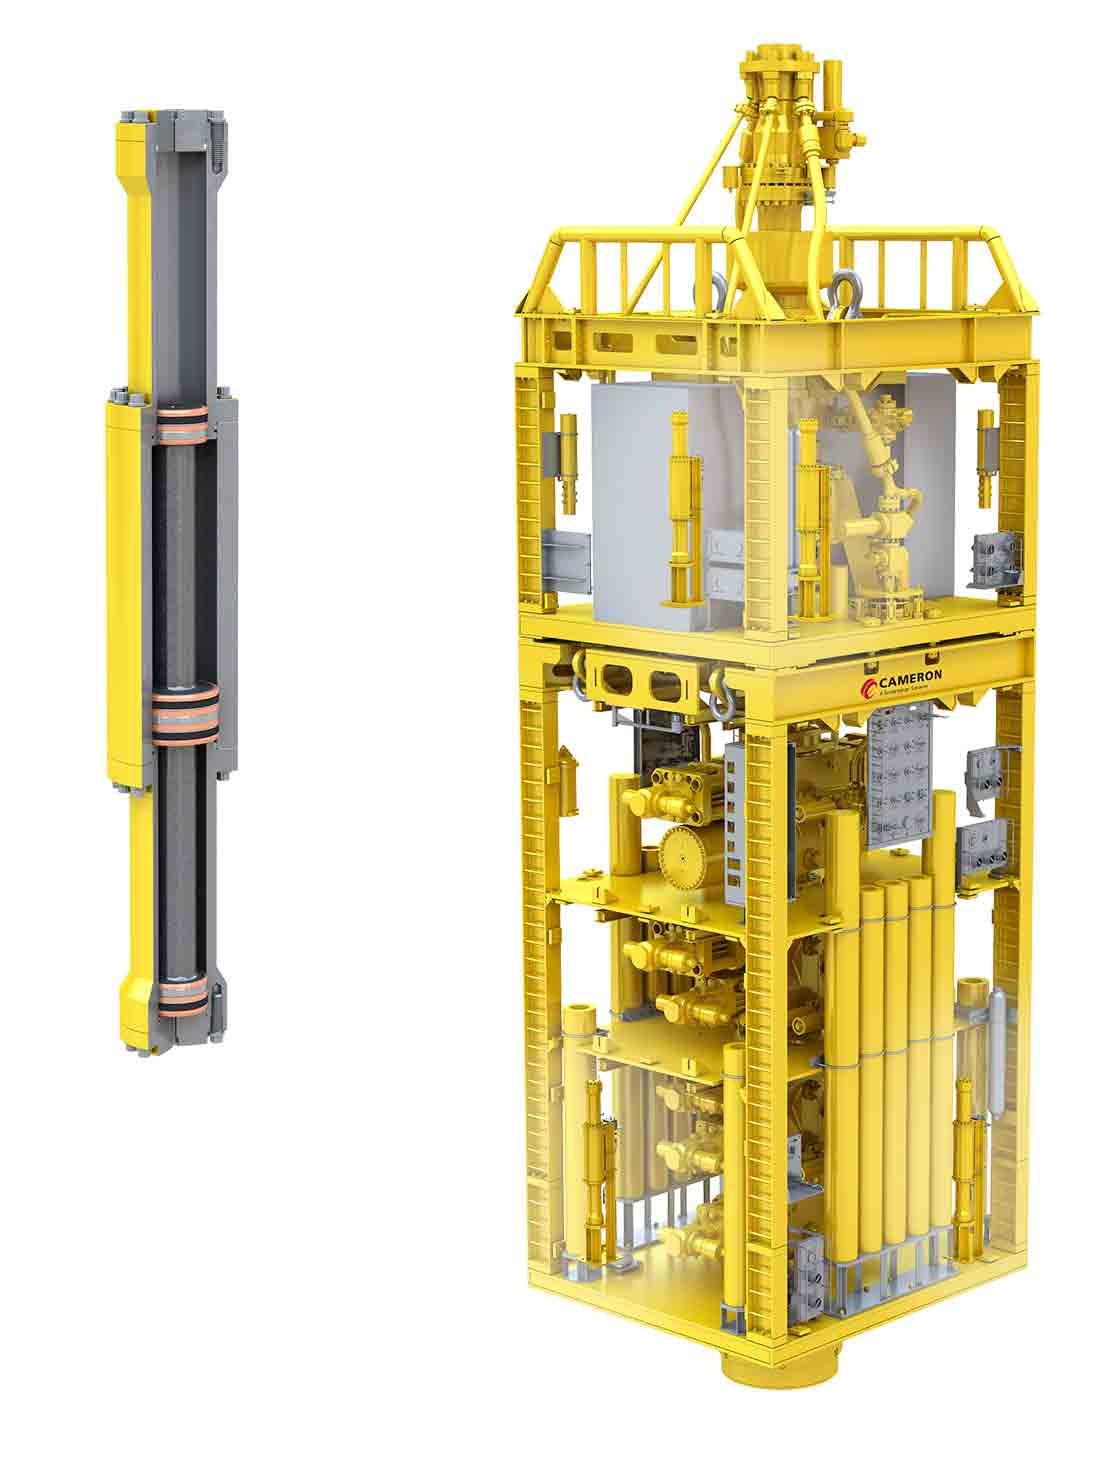 Rendering showing that the system needs two subsea pressure intensifiers installed on the stack.